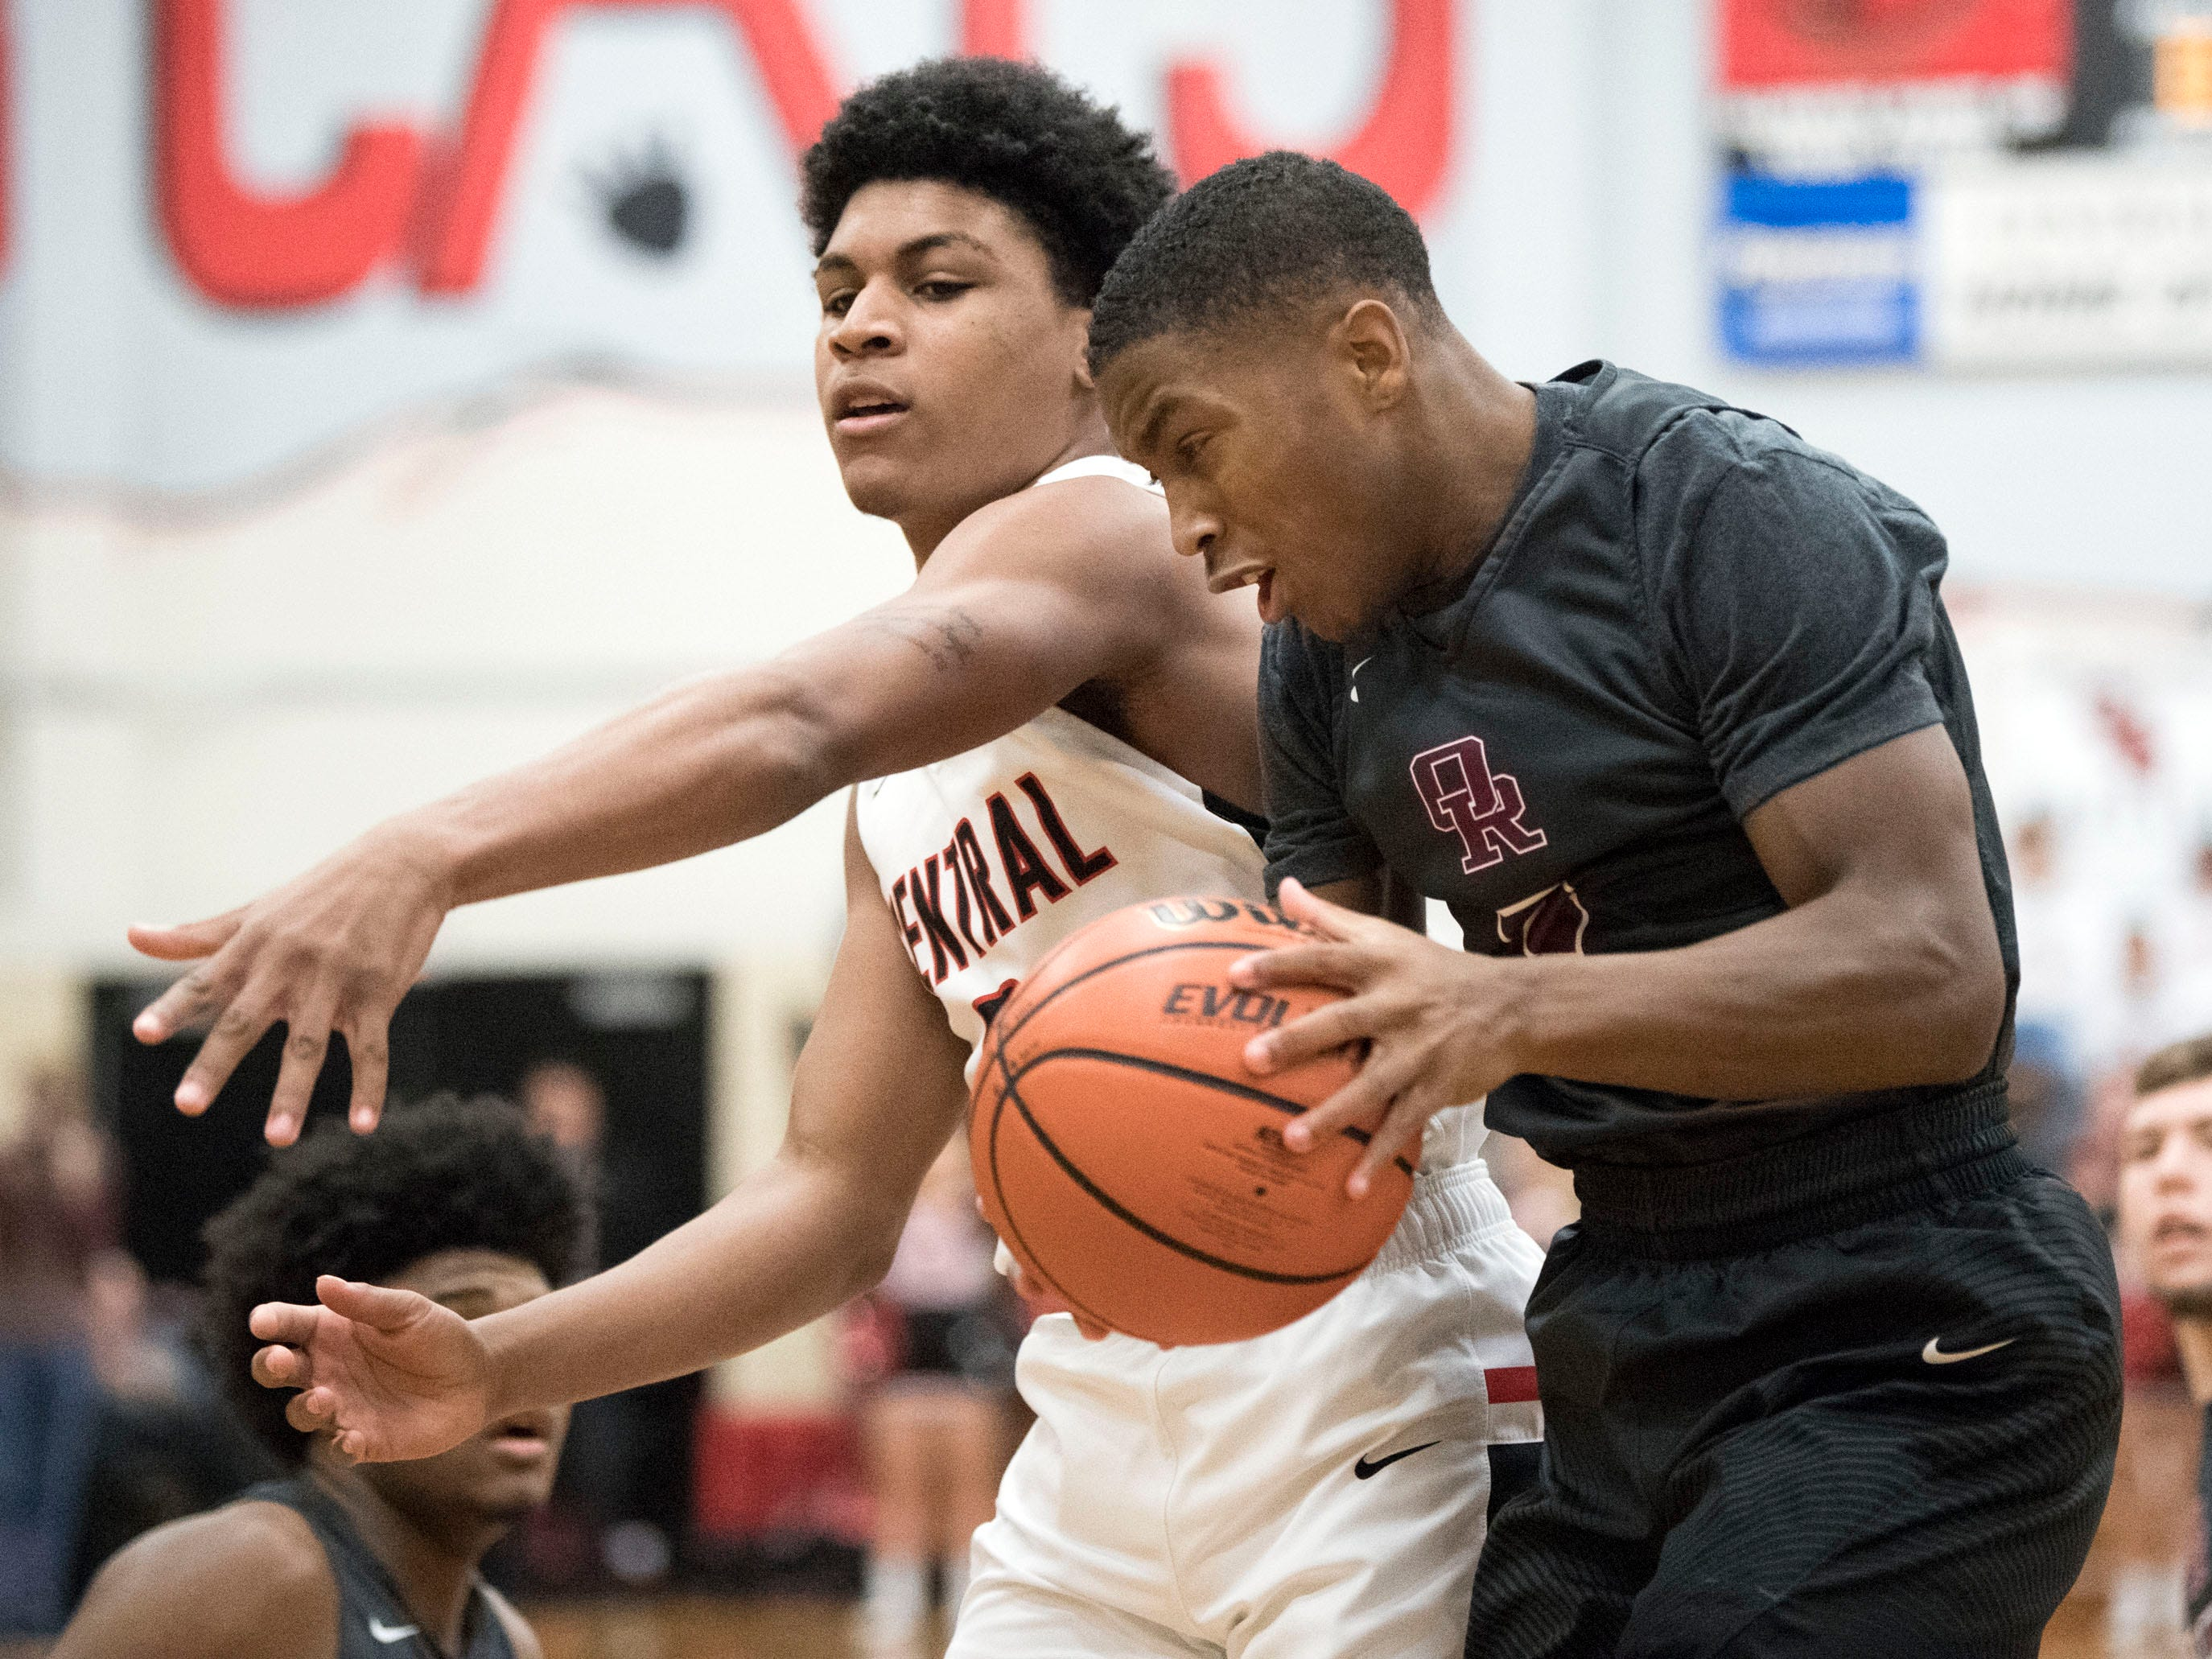 Oak Ridge's Marcus Smith (2) gets the rebound over Central's Tevon Summers (3) Central hosts Oak Ridge in basketball on Tuesday, January 15, 2019.